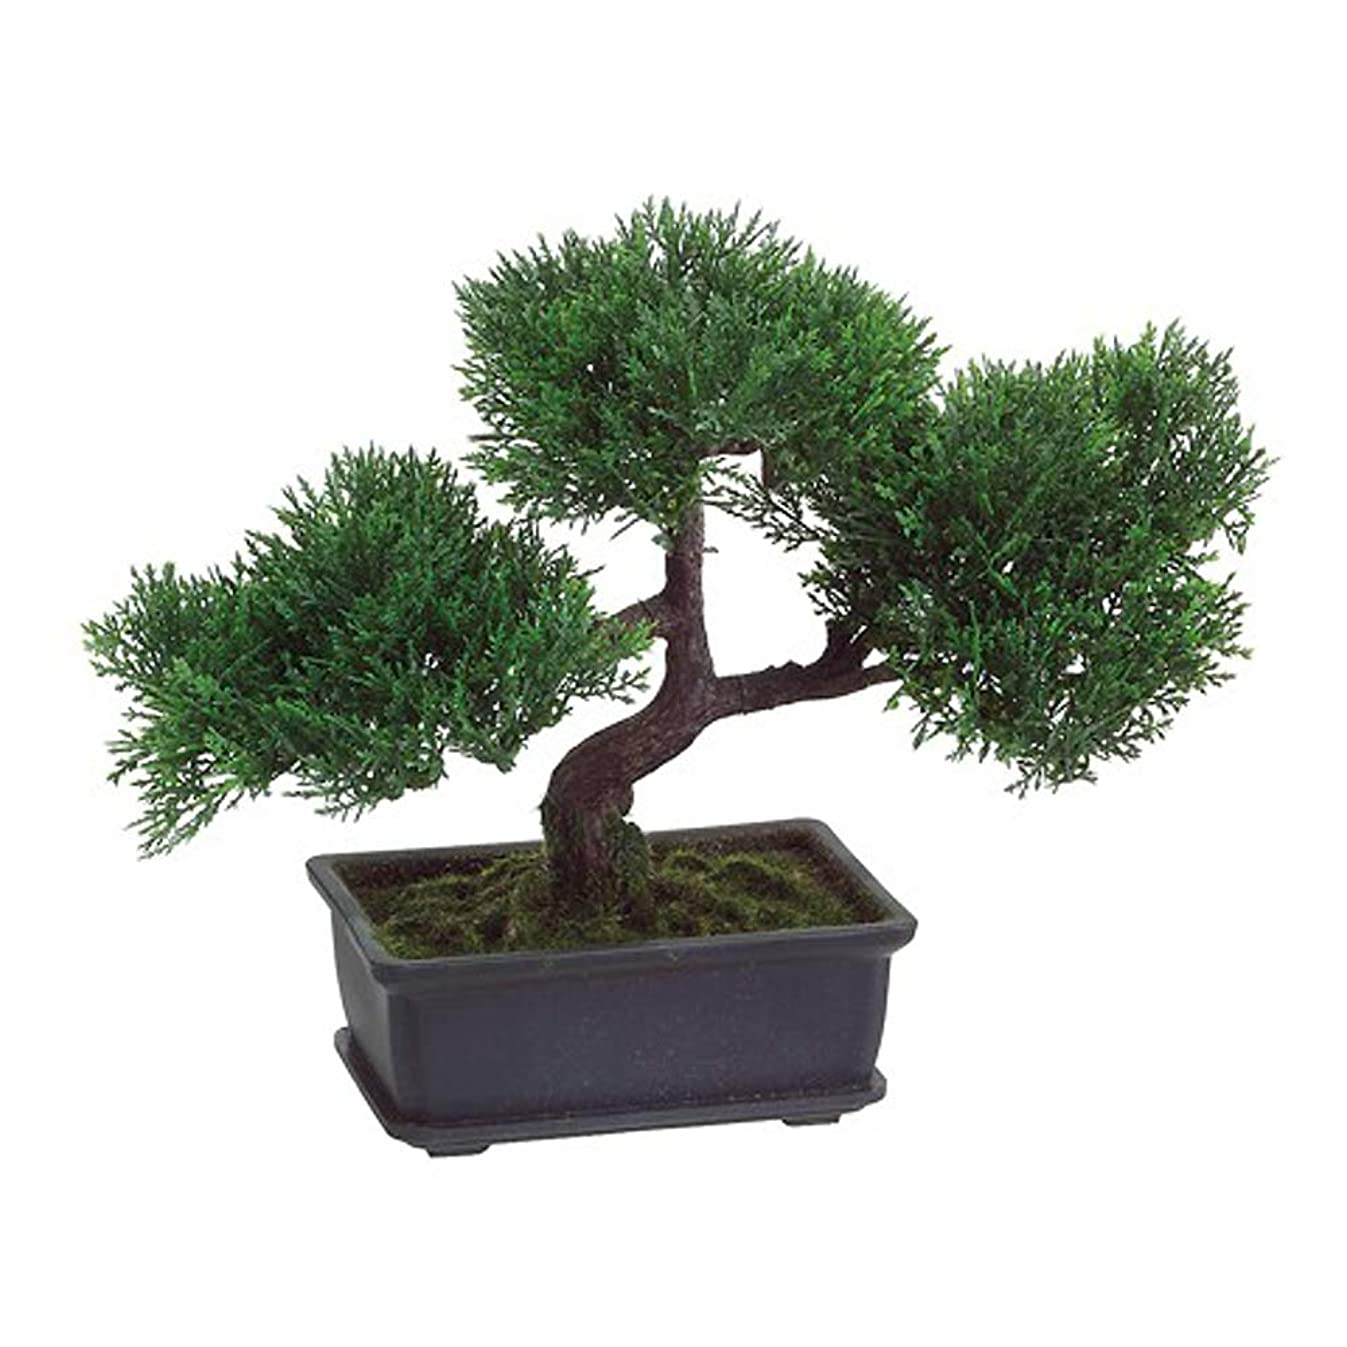 T-Trove Artificial Japanese Cedar Bonsai Tree 9 inch Tall